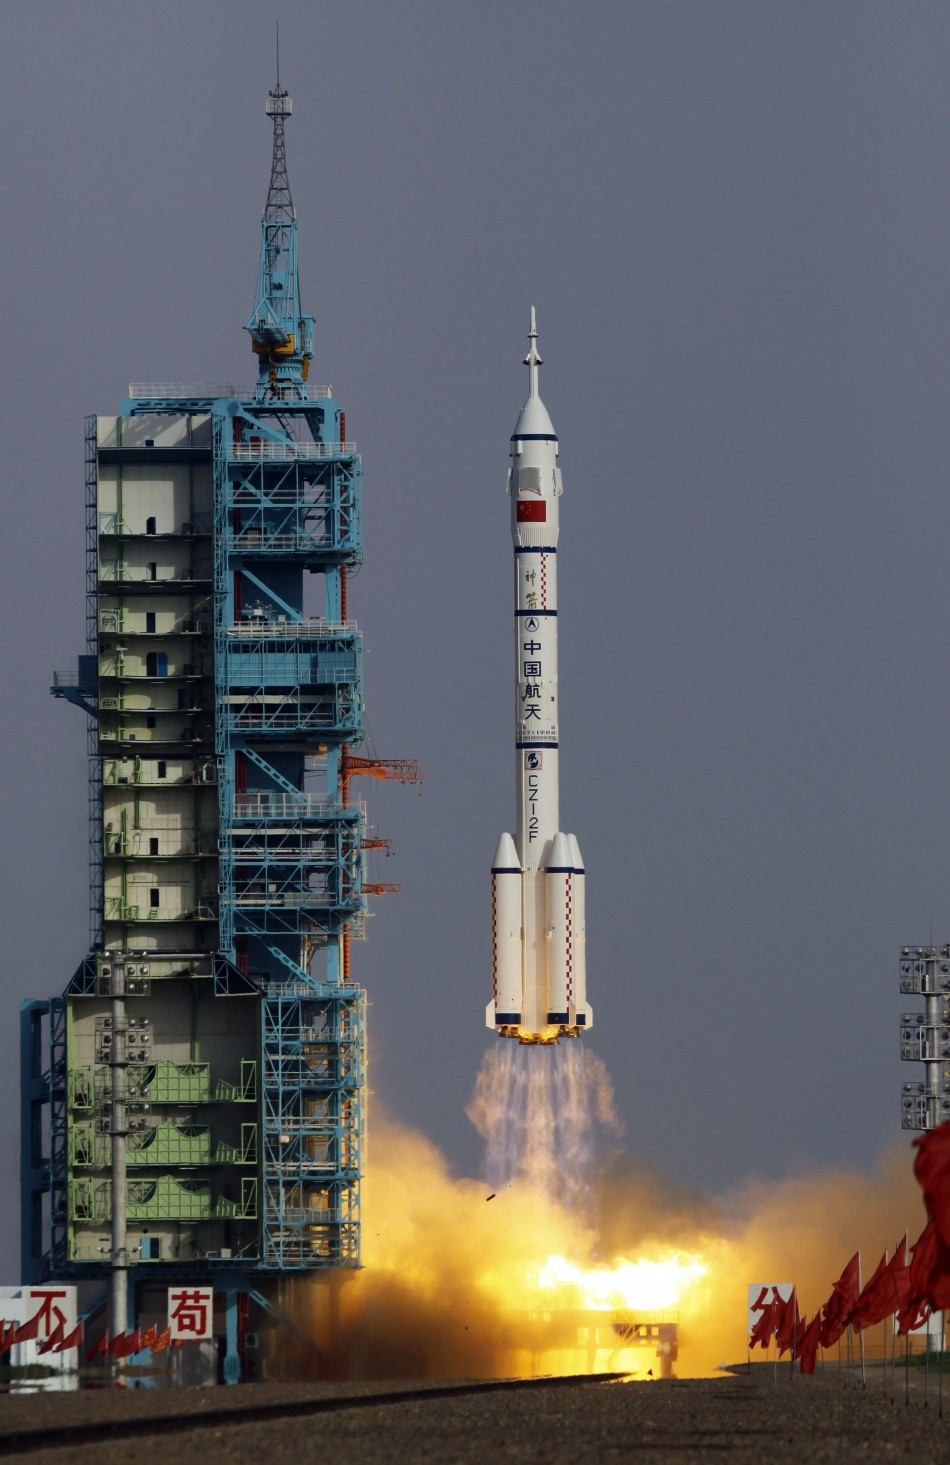 The Long March II-F rocket loaded with Shenzhou-9 manned spacecraft